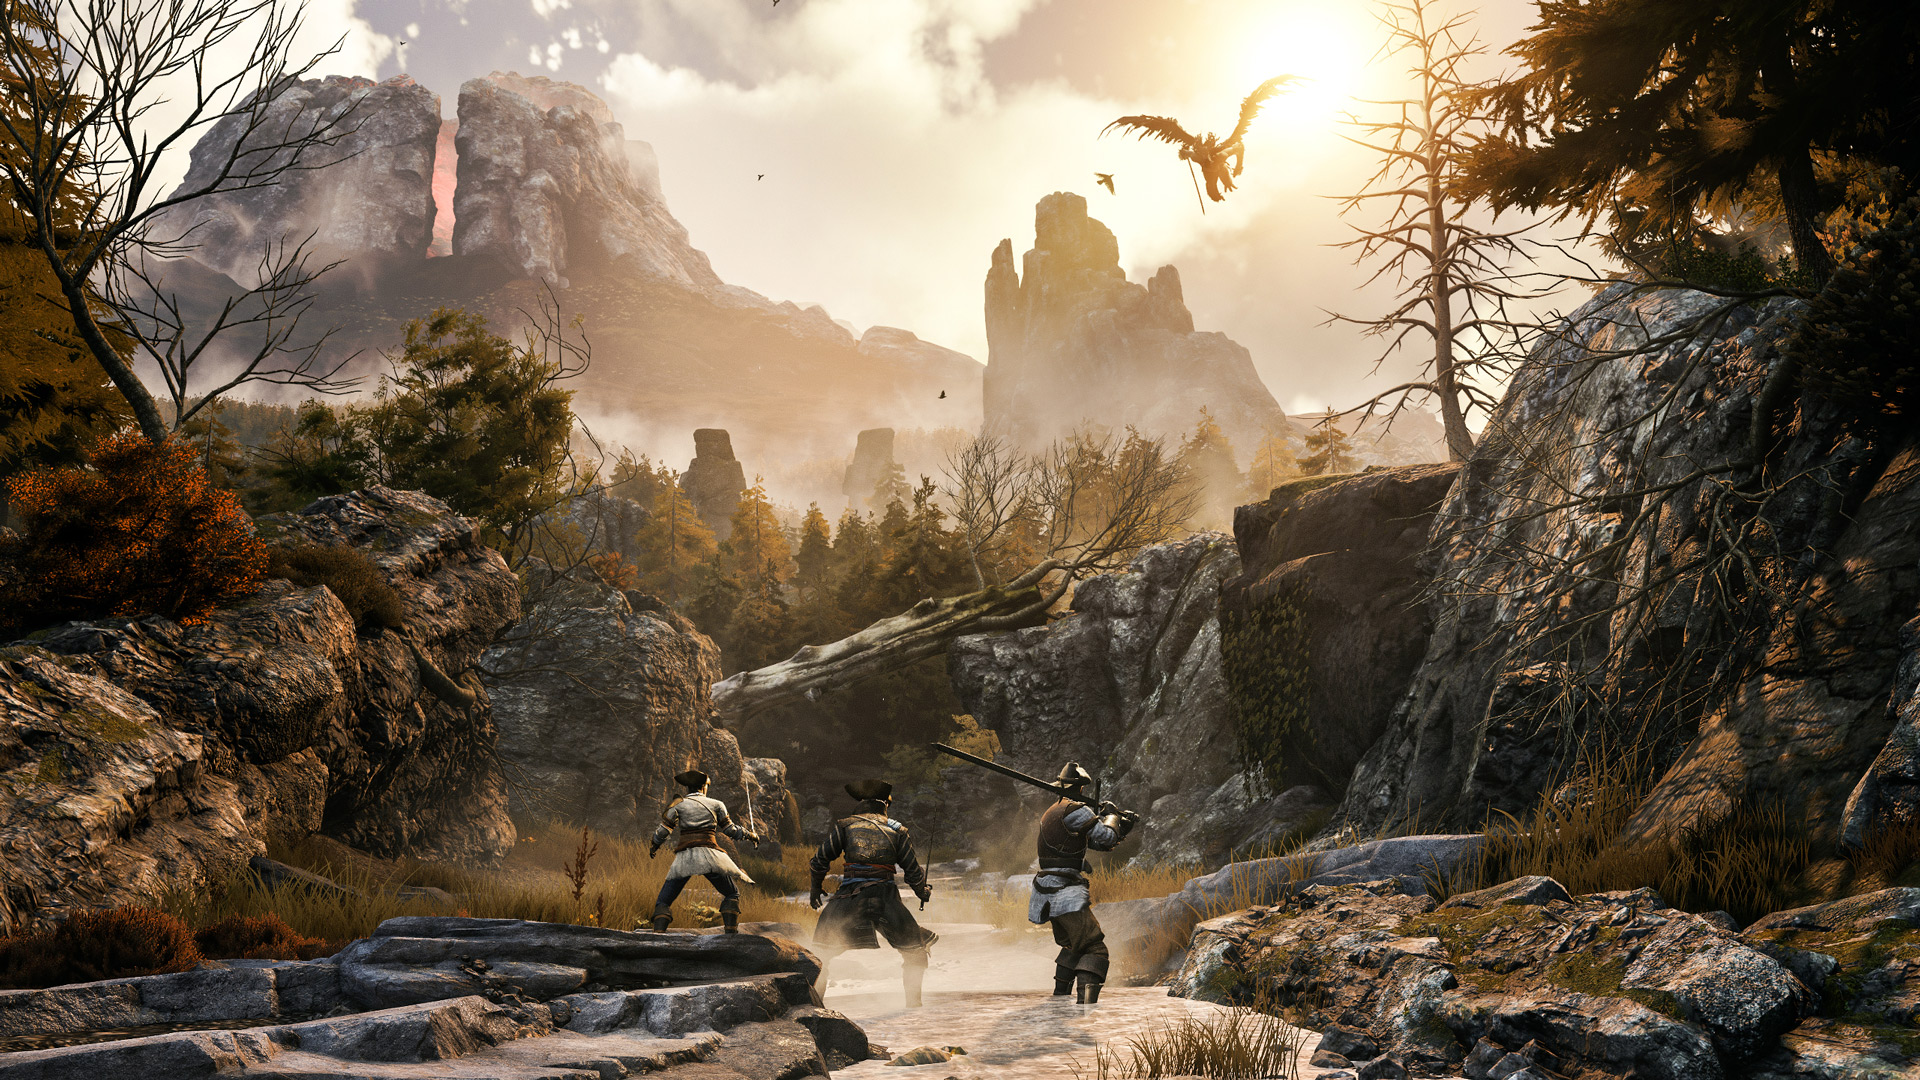 A GreedFall expansion has been revealed in new partnership